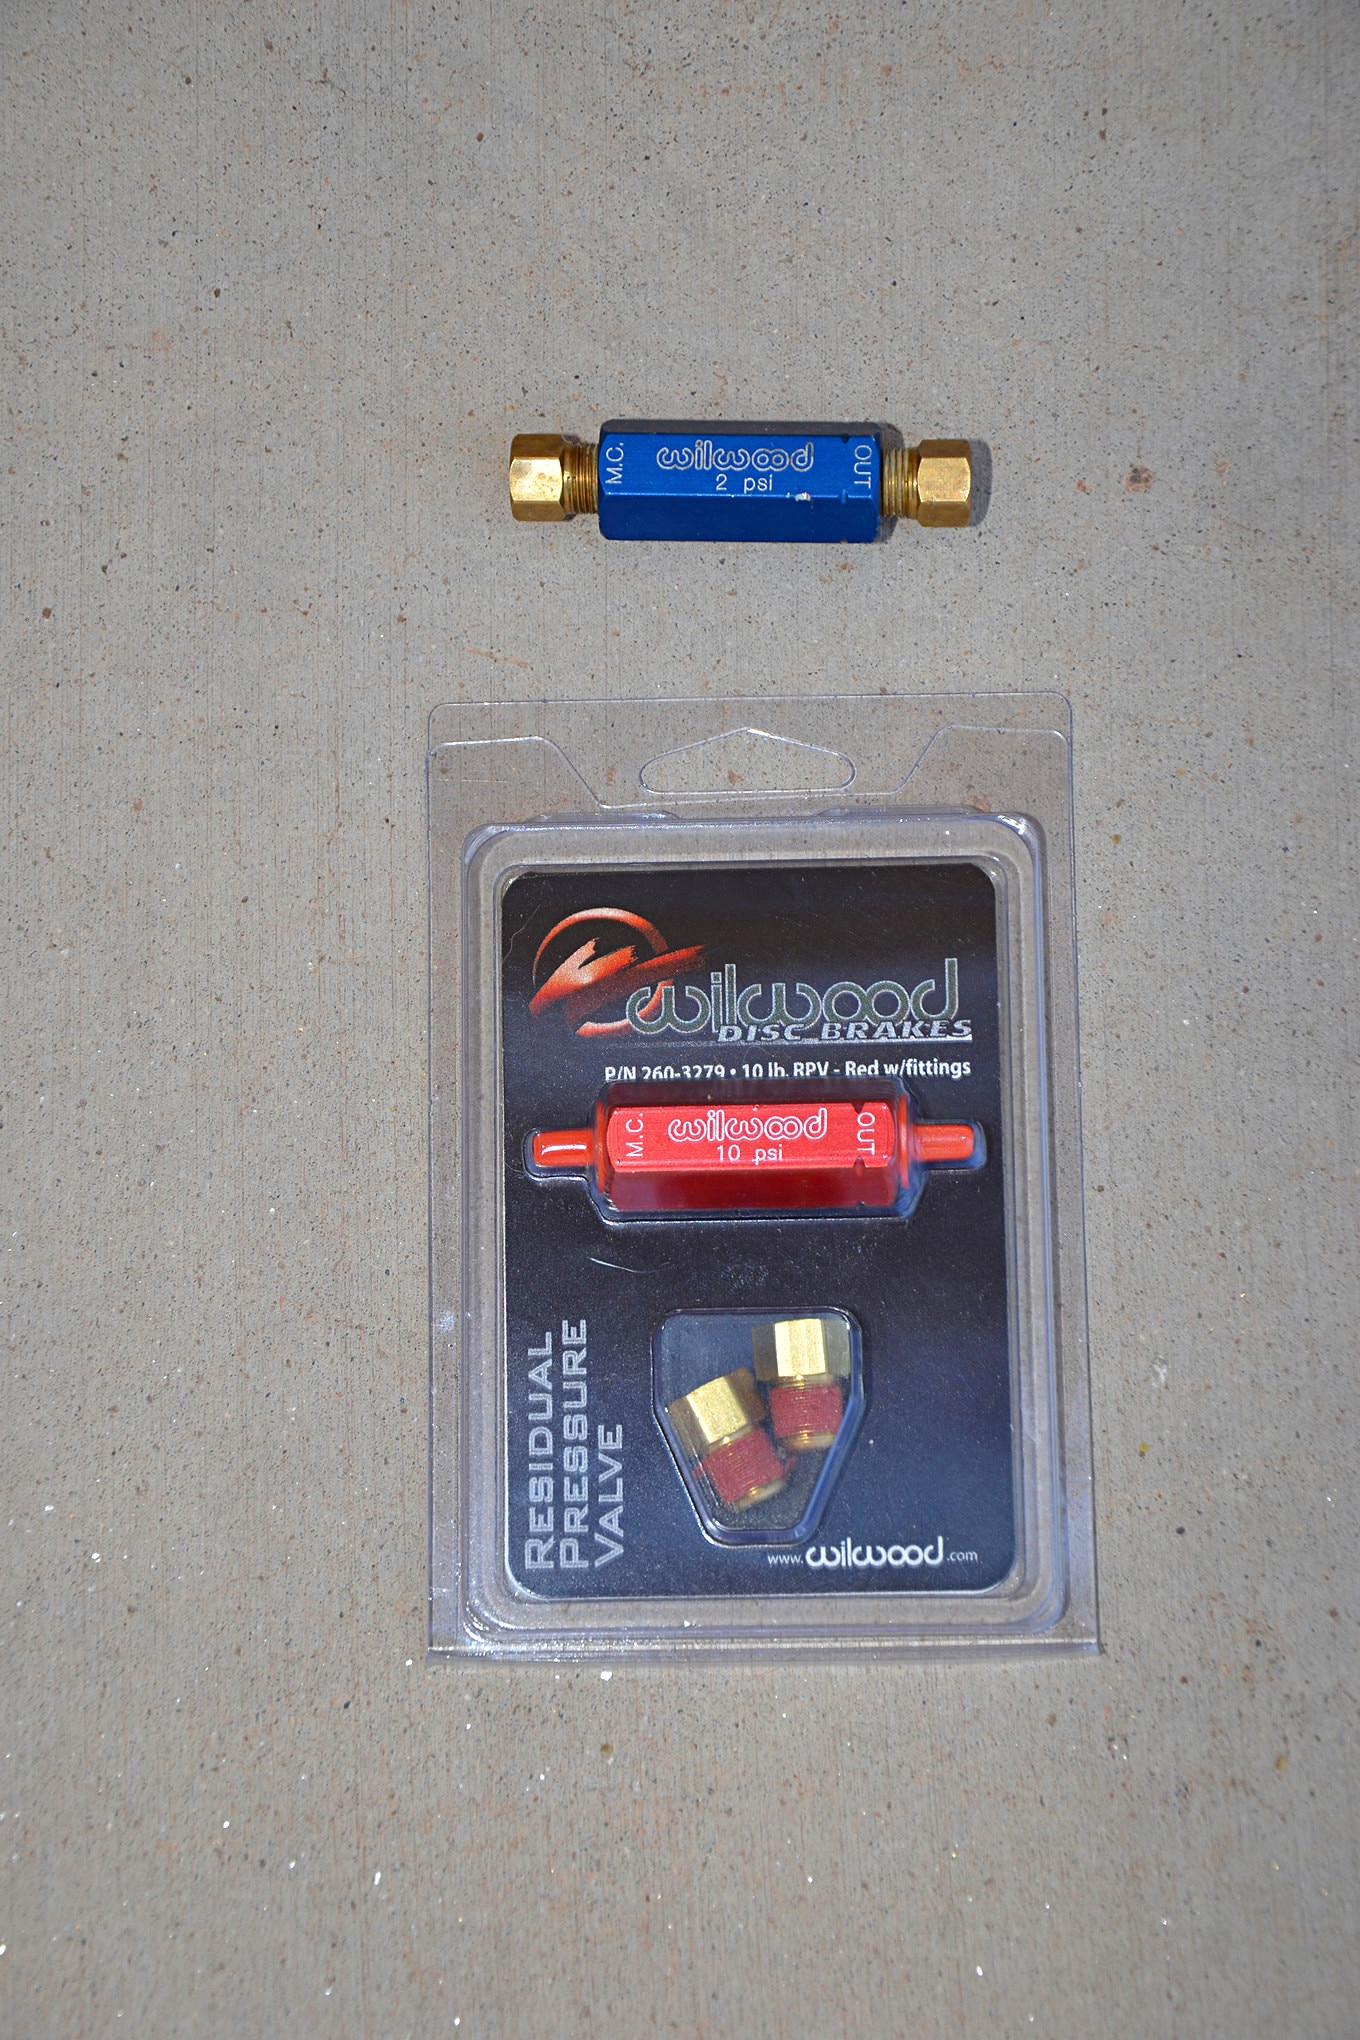 Wilwood also sells two residual pressure valves for custom braking systems. The company's 2-pound residual pressure valve (blue) is for use with disc brakes where the master cylinder is mounted low and brake fluid backflow could occur. The 10-pound residual pressure valve (red) is for drum brake systems to hold the shoes against the drums and reduce pumping.